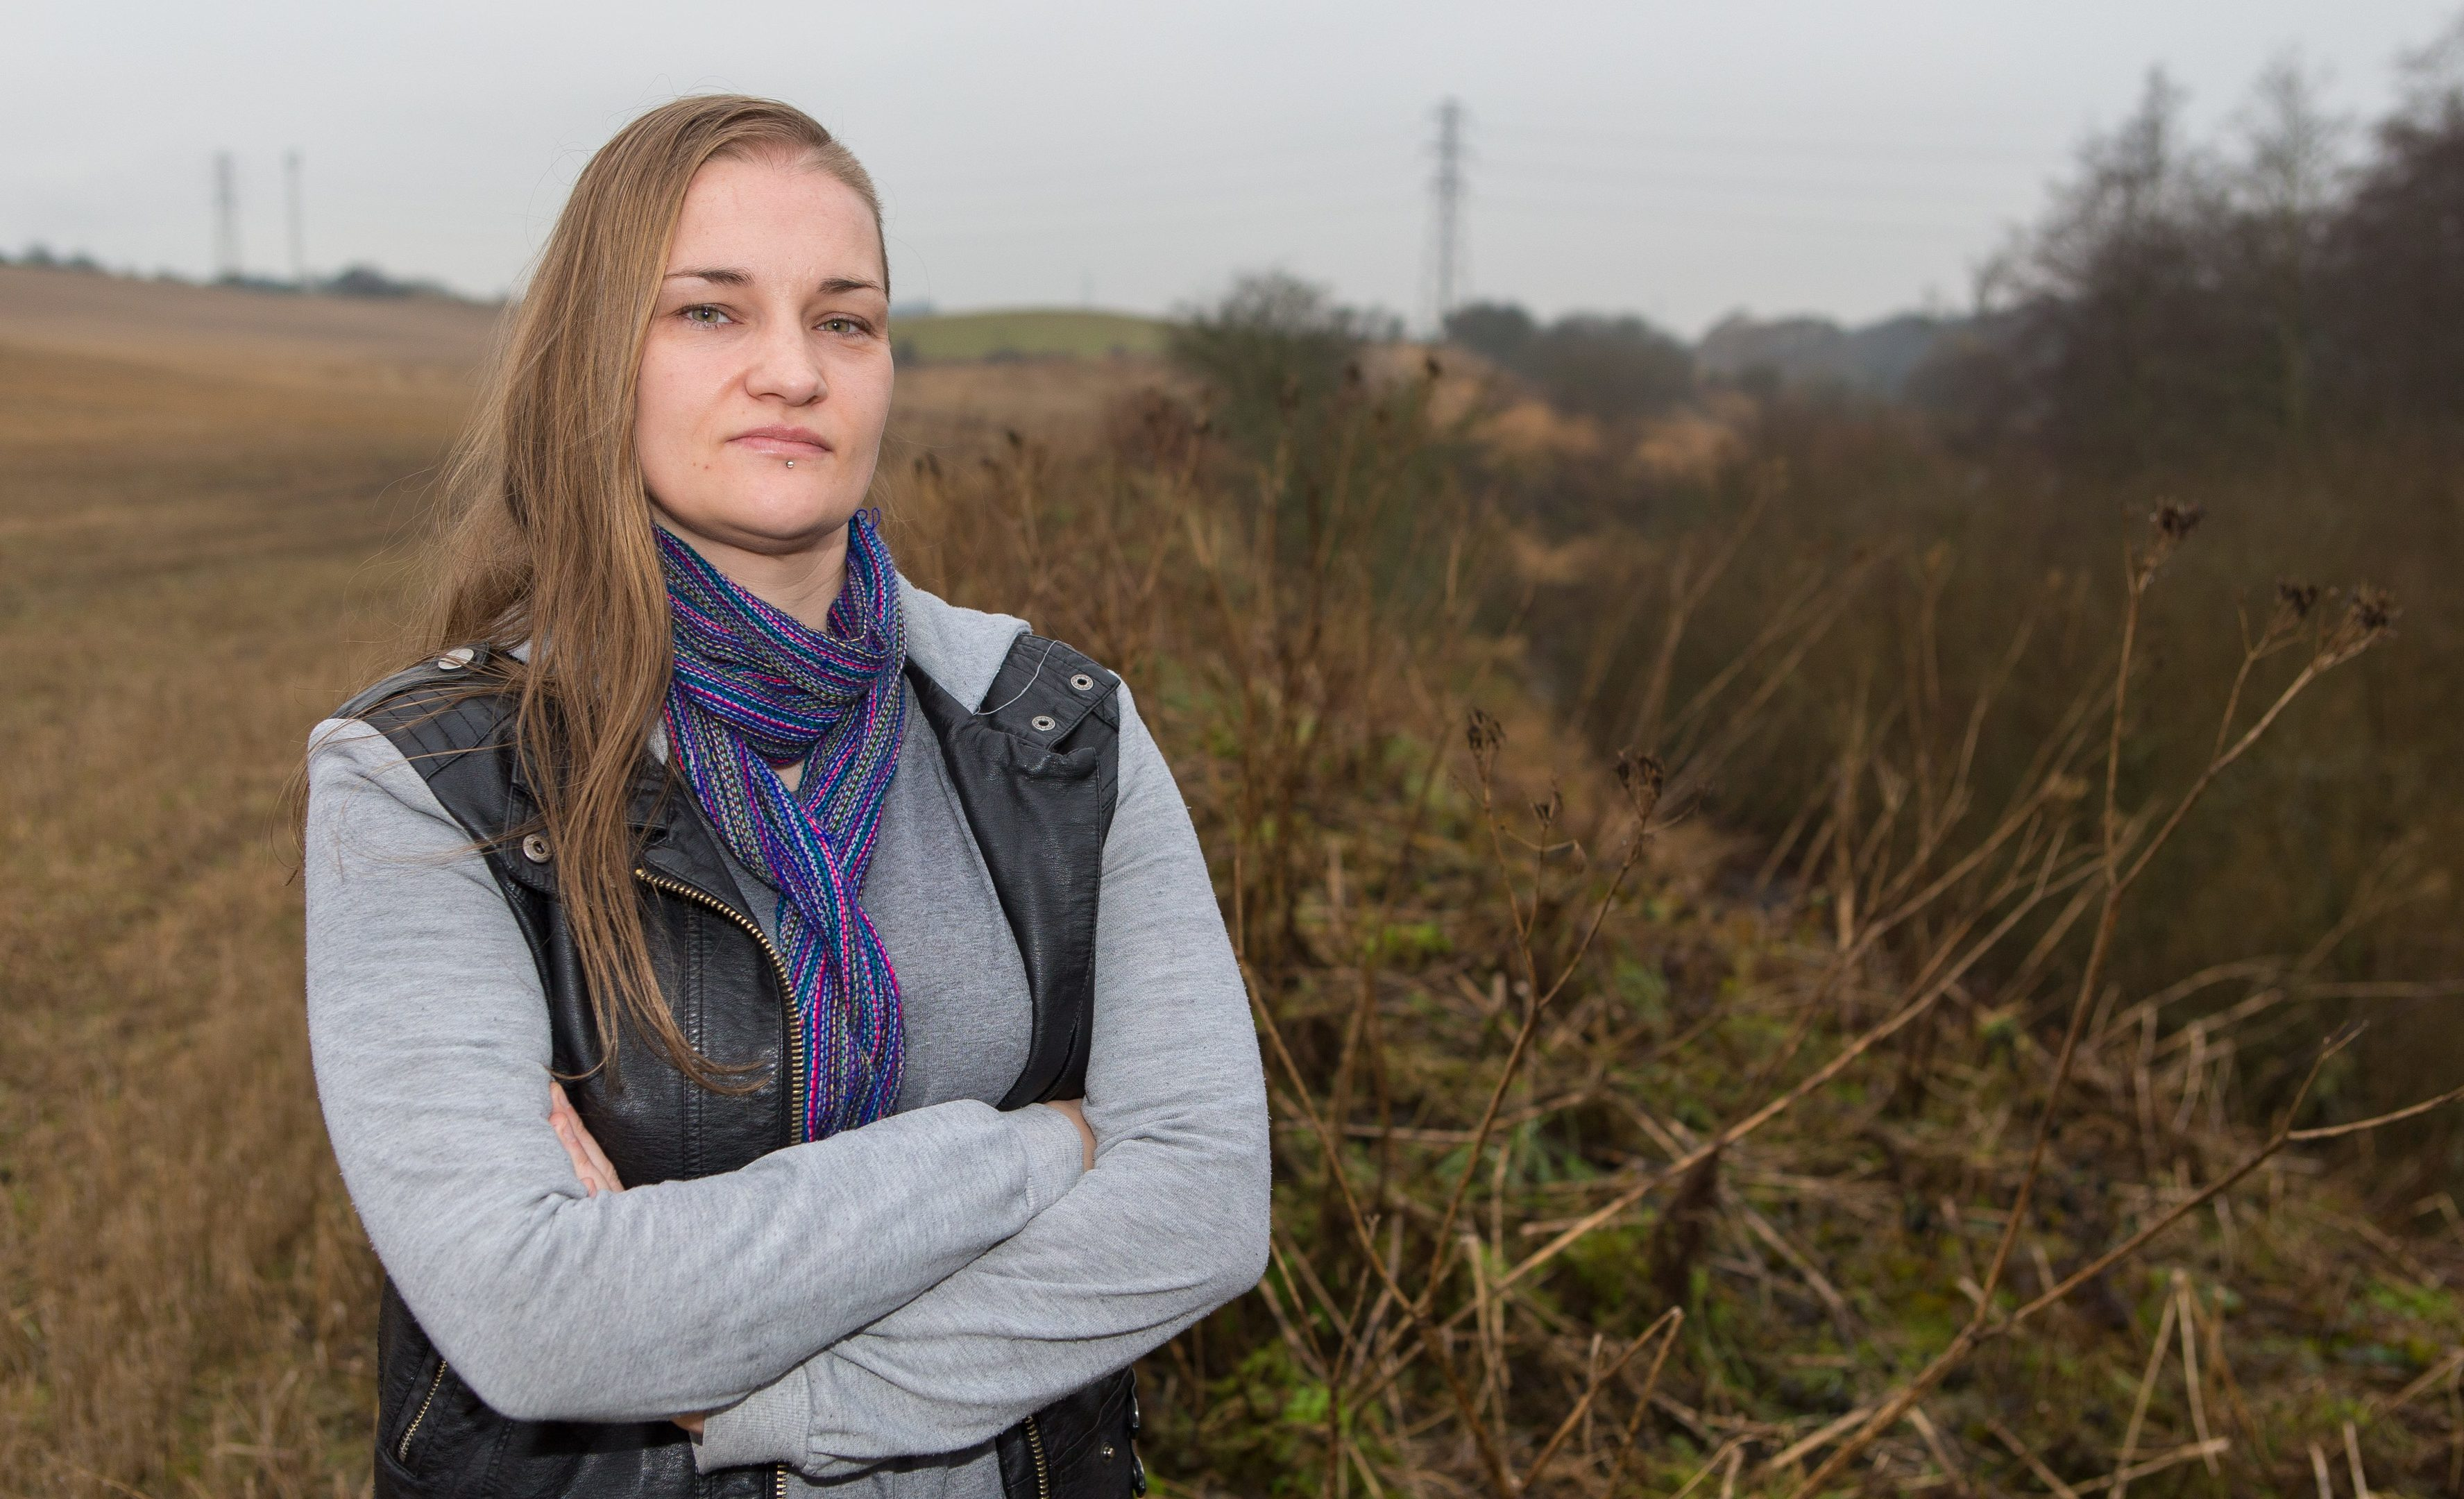 Jacqueline Scott, from Cardenden, discovered the mutilated bodies of two foxes at the side of the field where she walks her dogs.